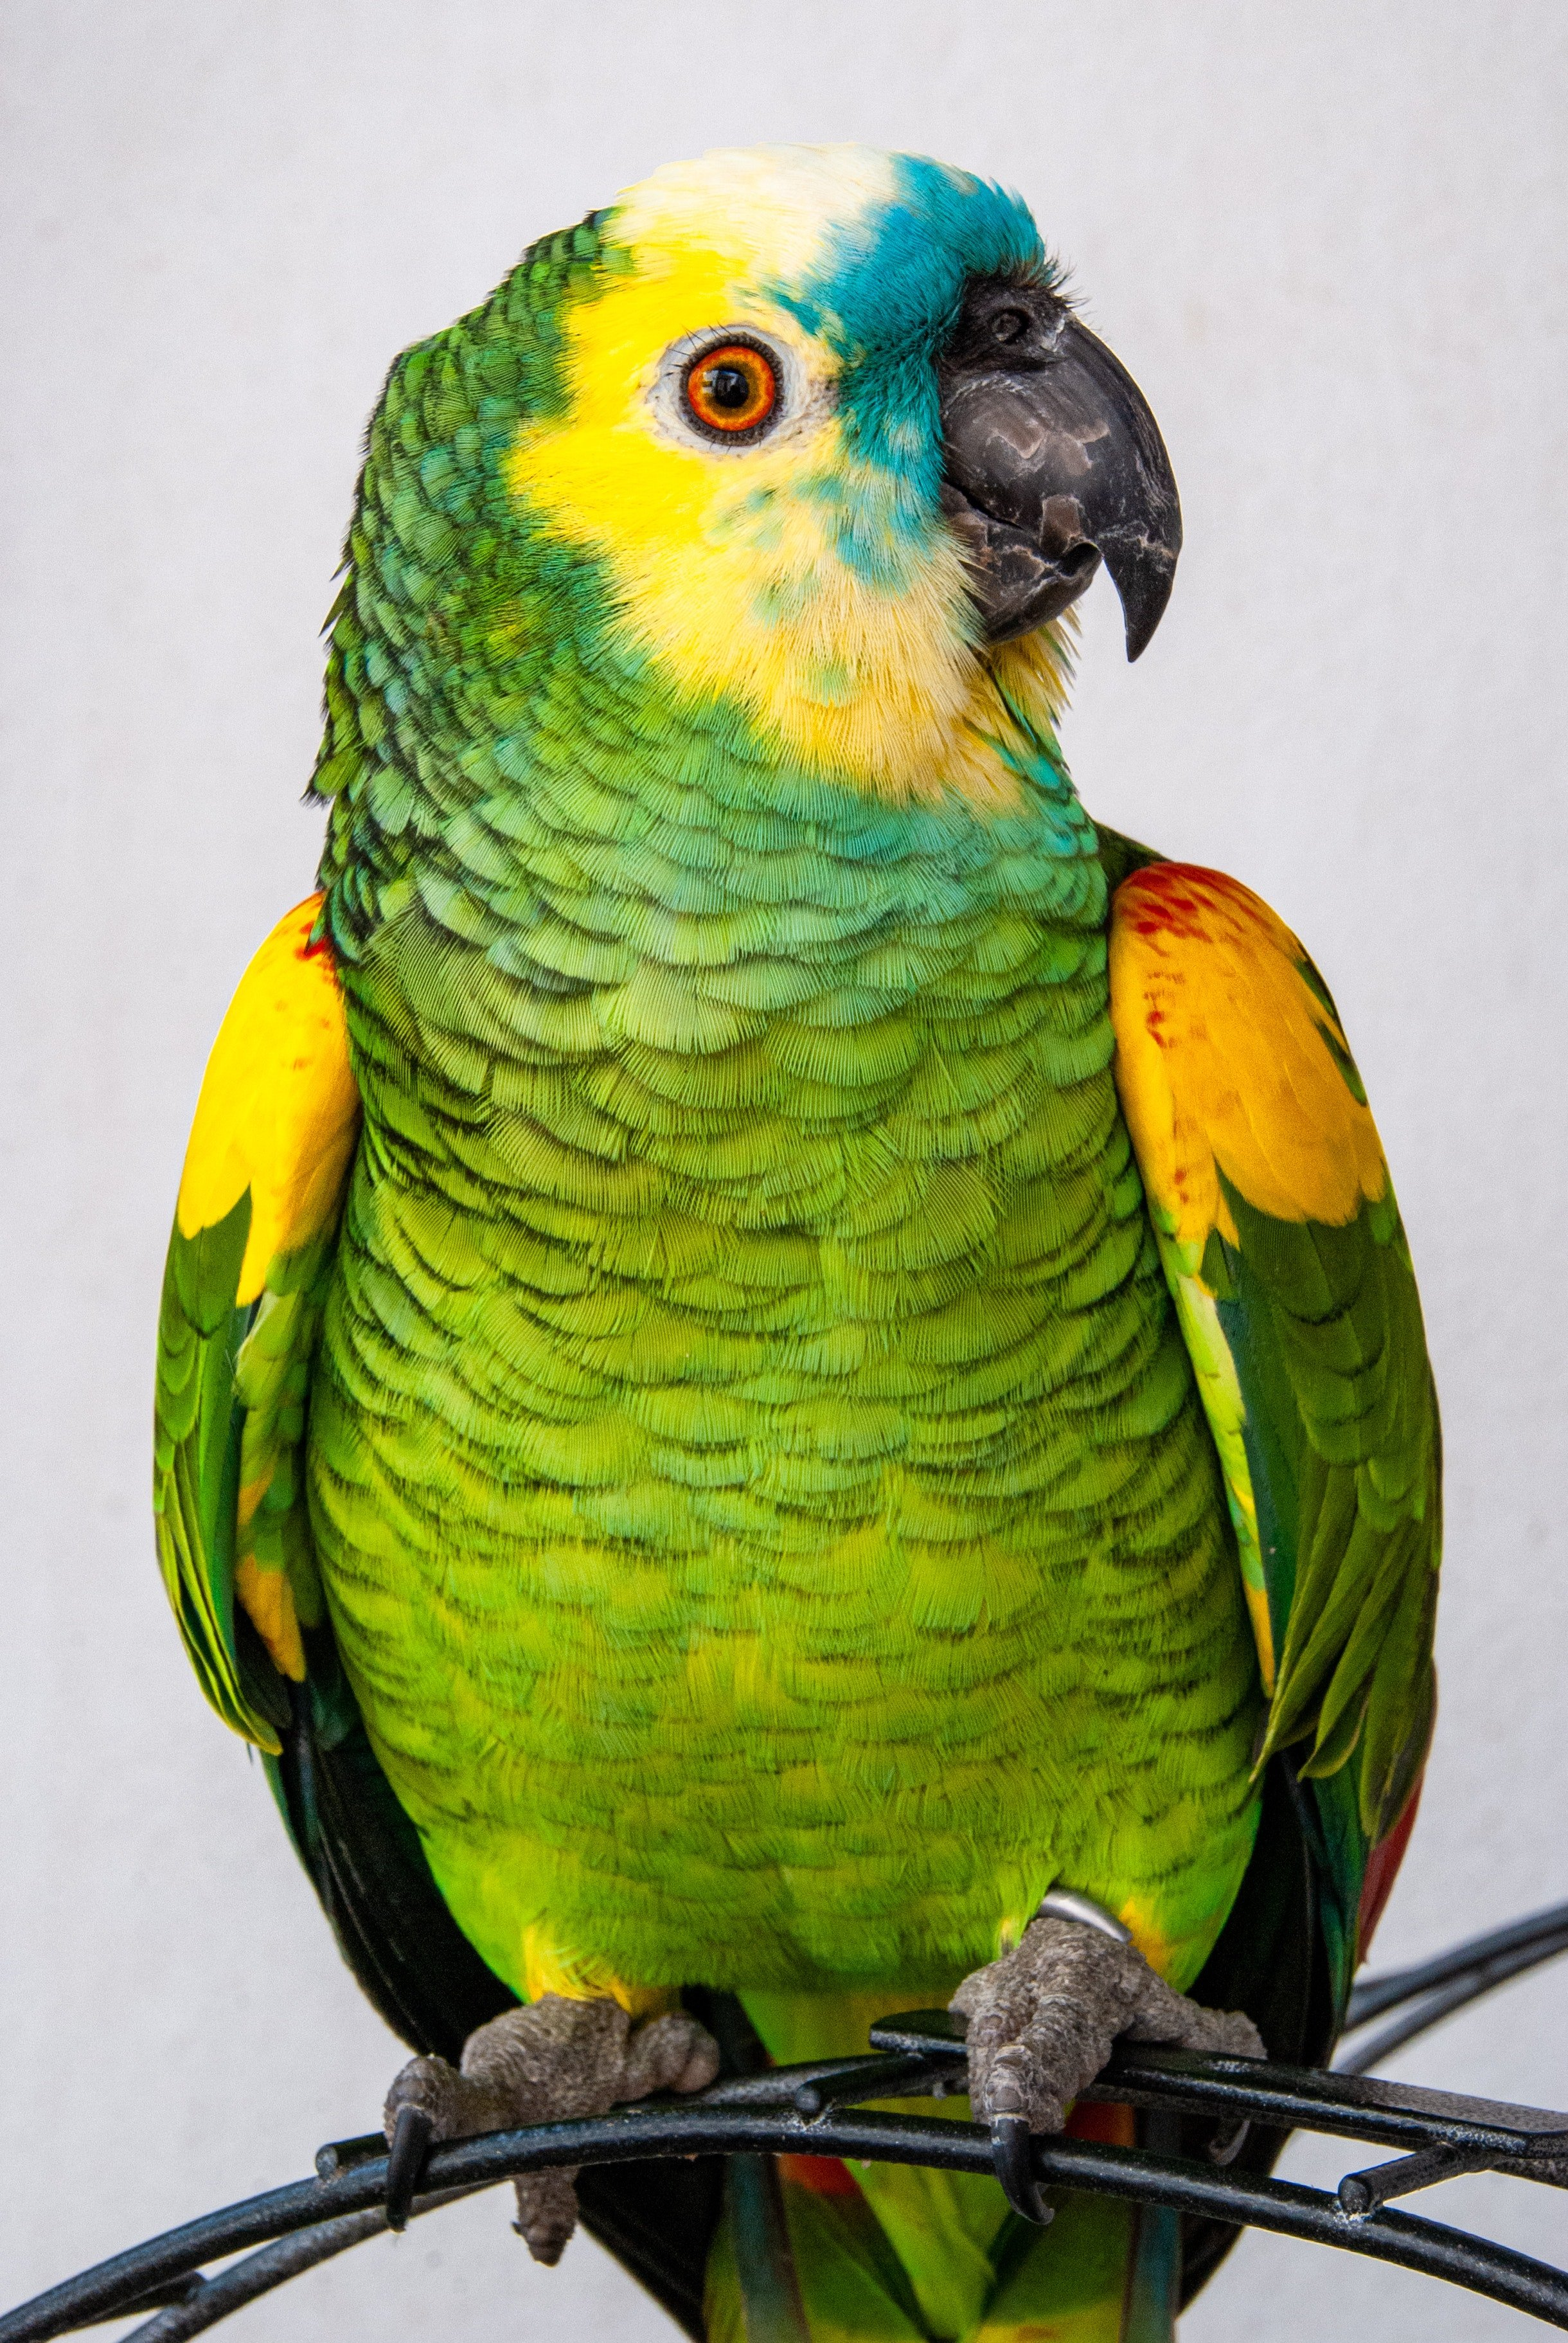 Photo of a colorful parrot. | Photo: Pexels